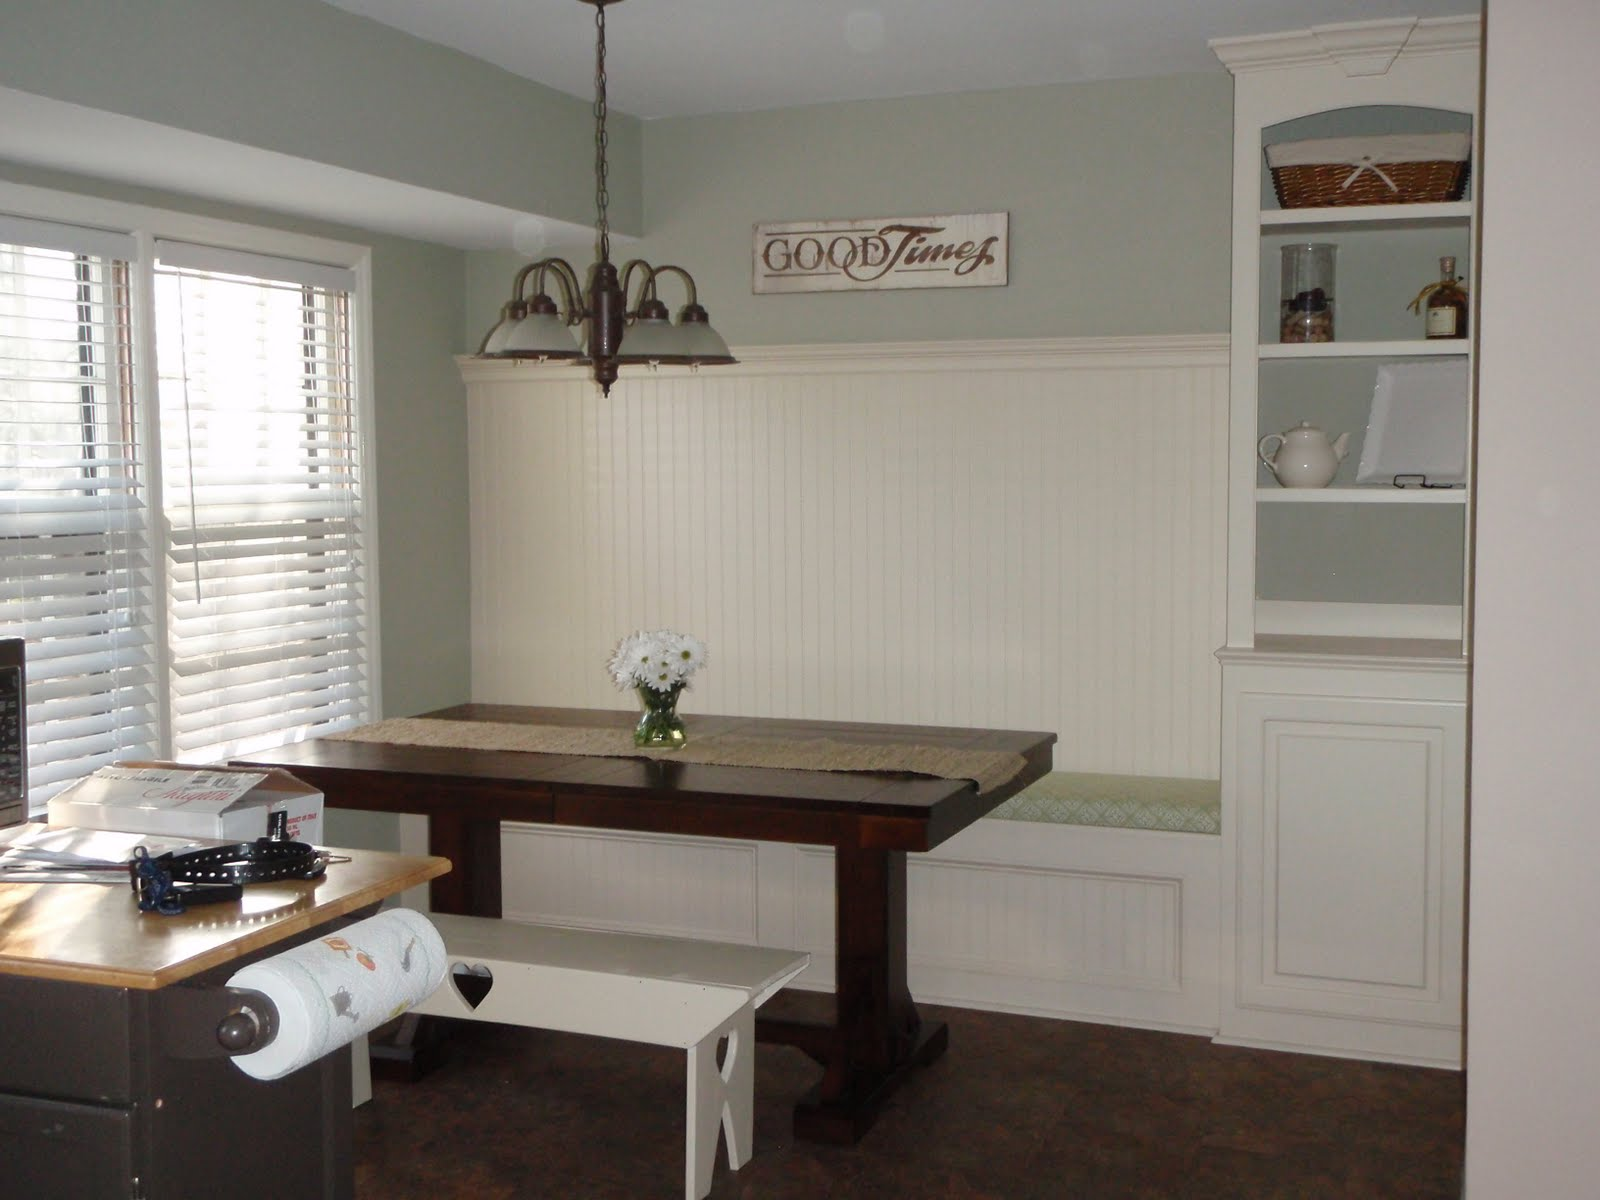 banquette bench kitchen flooring ideas for remodelaholic renovation with built in